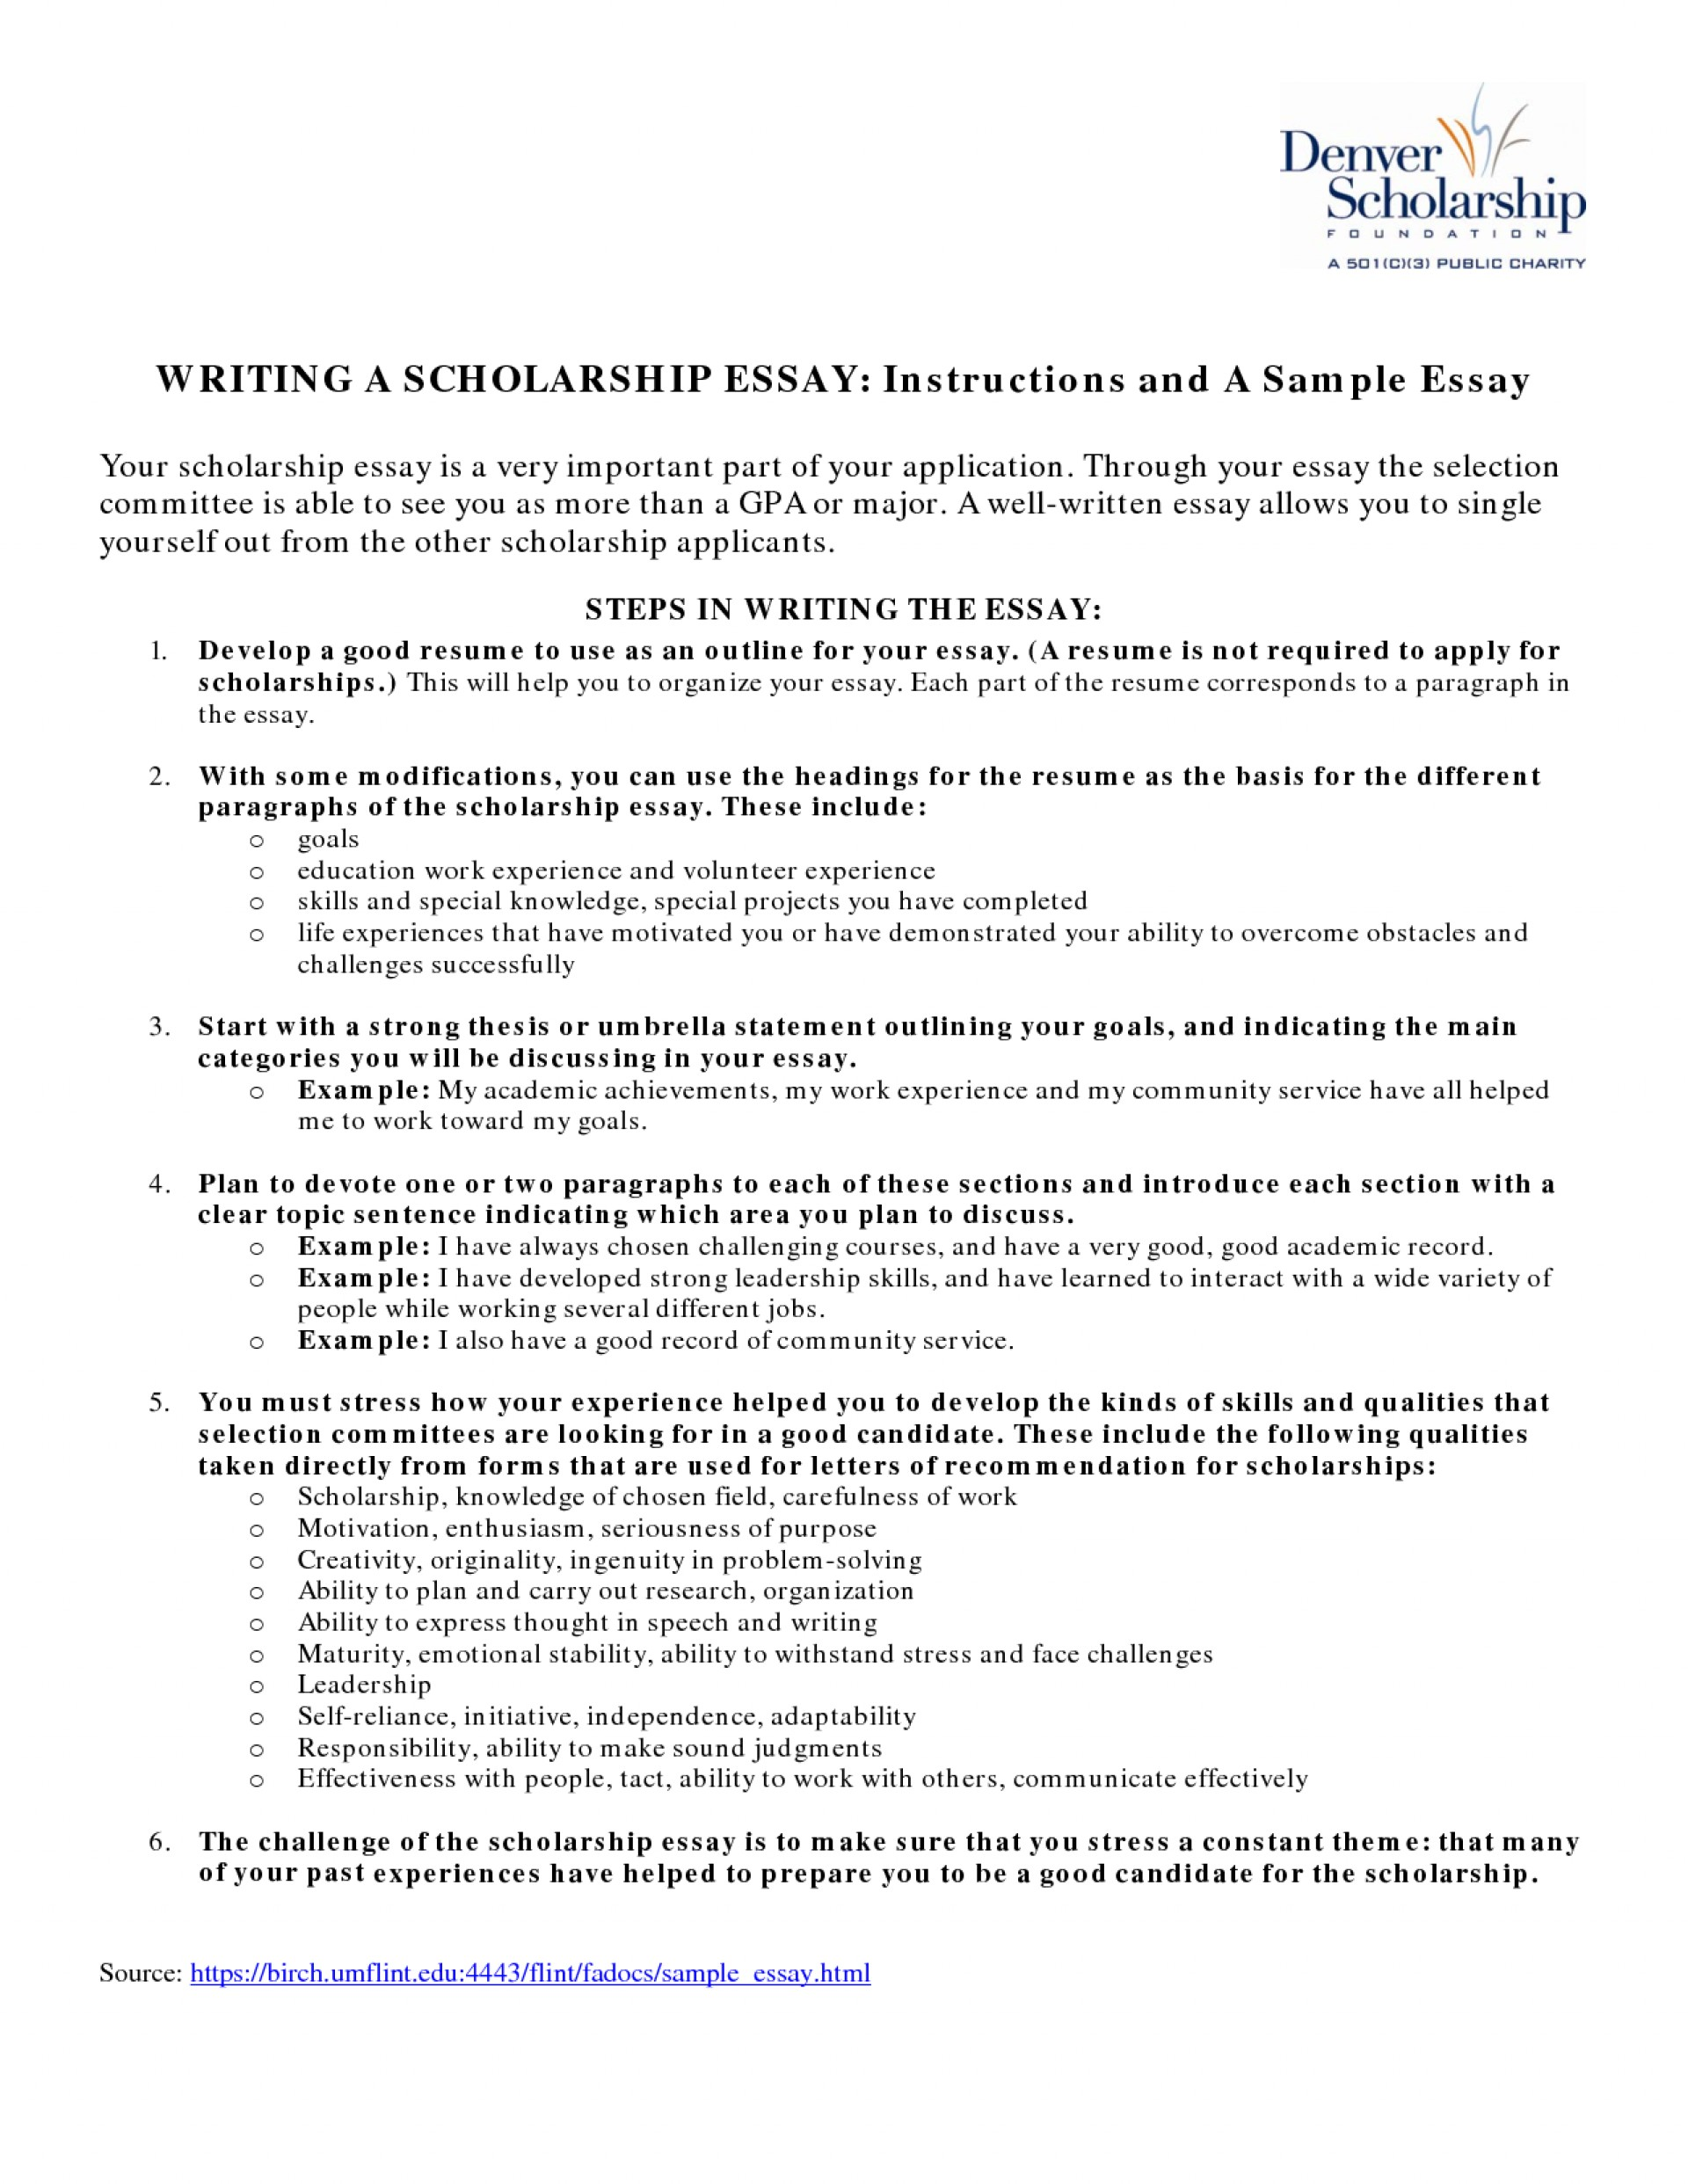 021 Writing Scholarship Essay What To Write About Yourself On Tips For Effective Essays Winning Excellent A Good Your Goals 1920